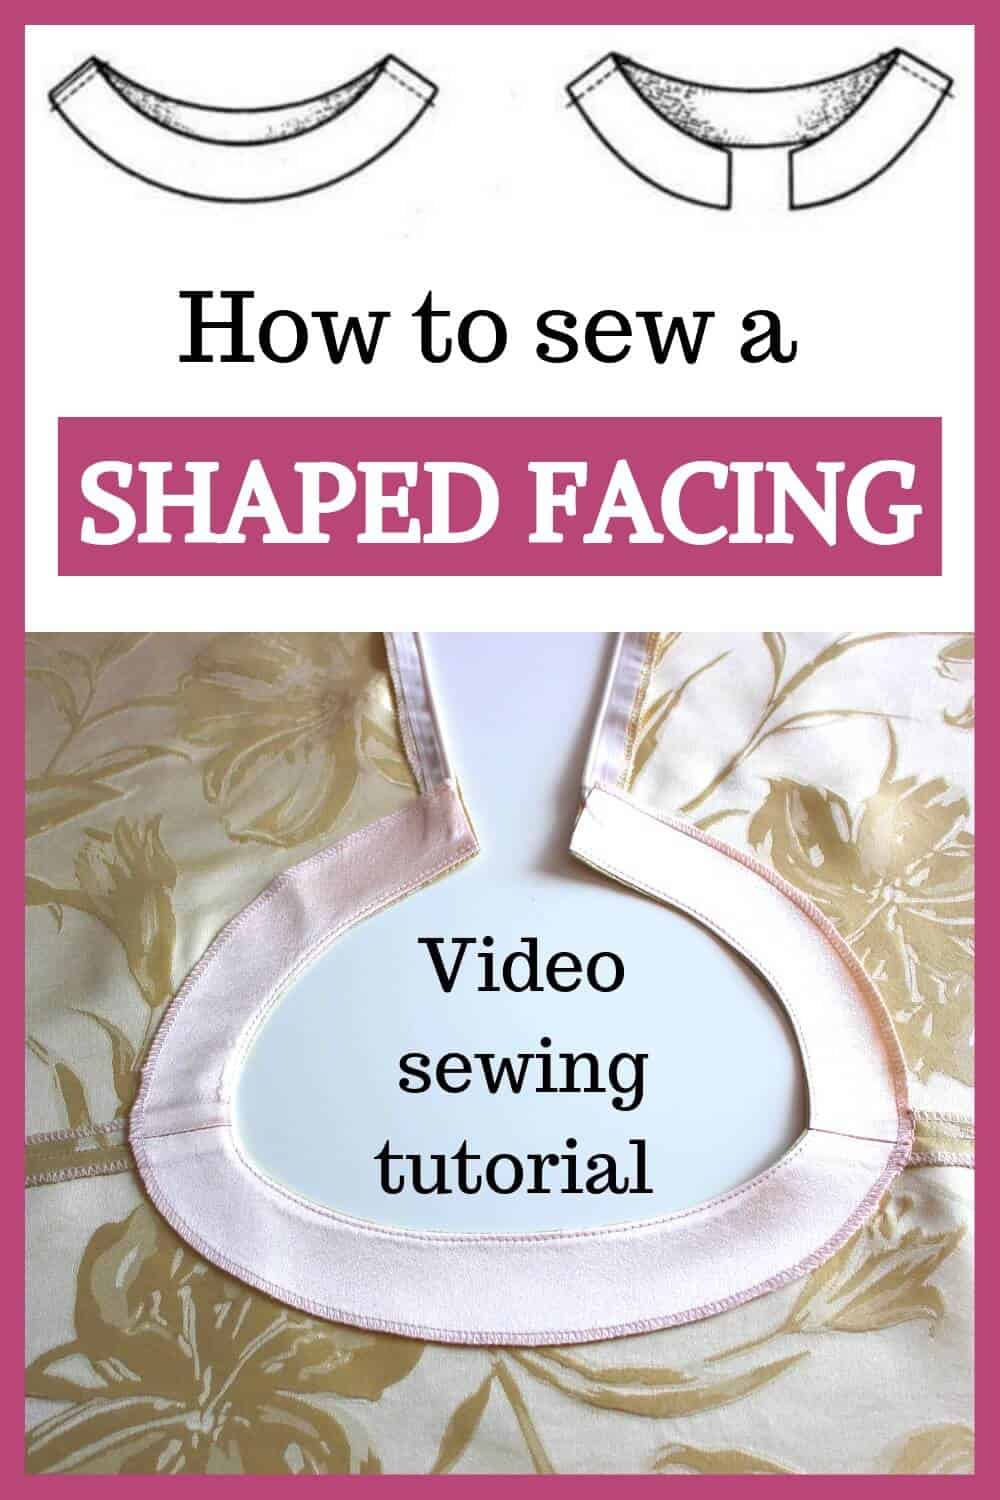 How to sew a facing - a video sewing tutorial